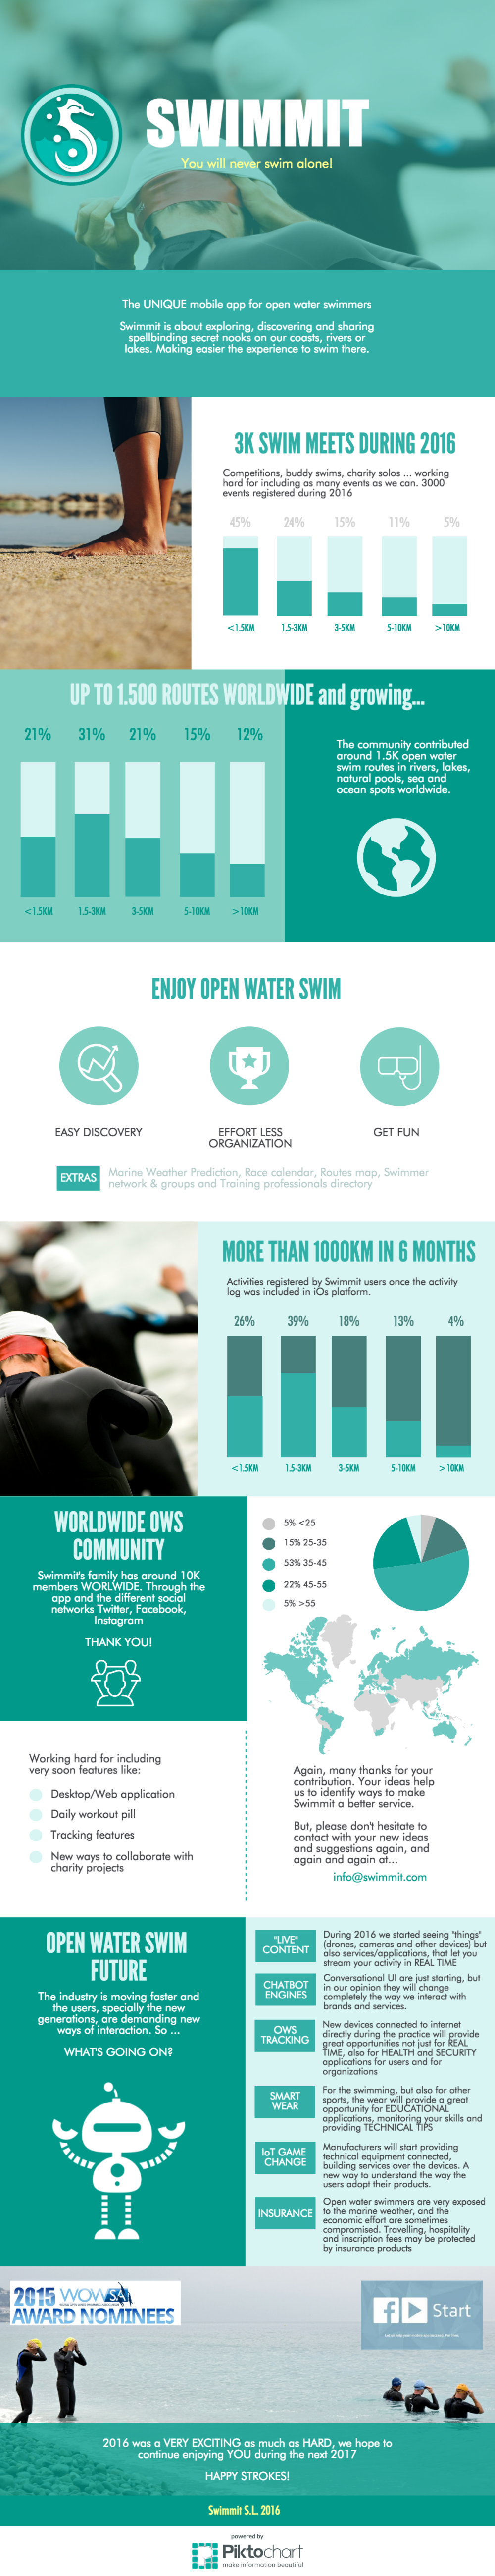 2016-swimmit-infography